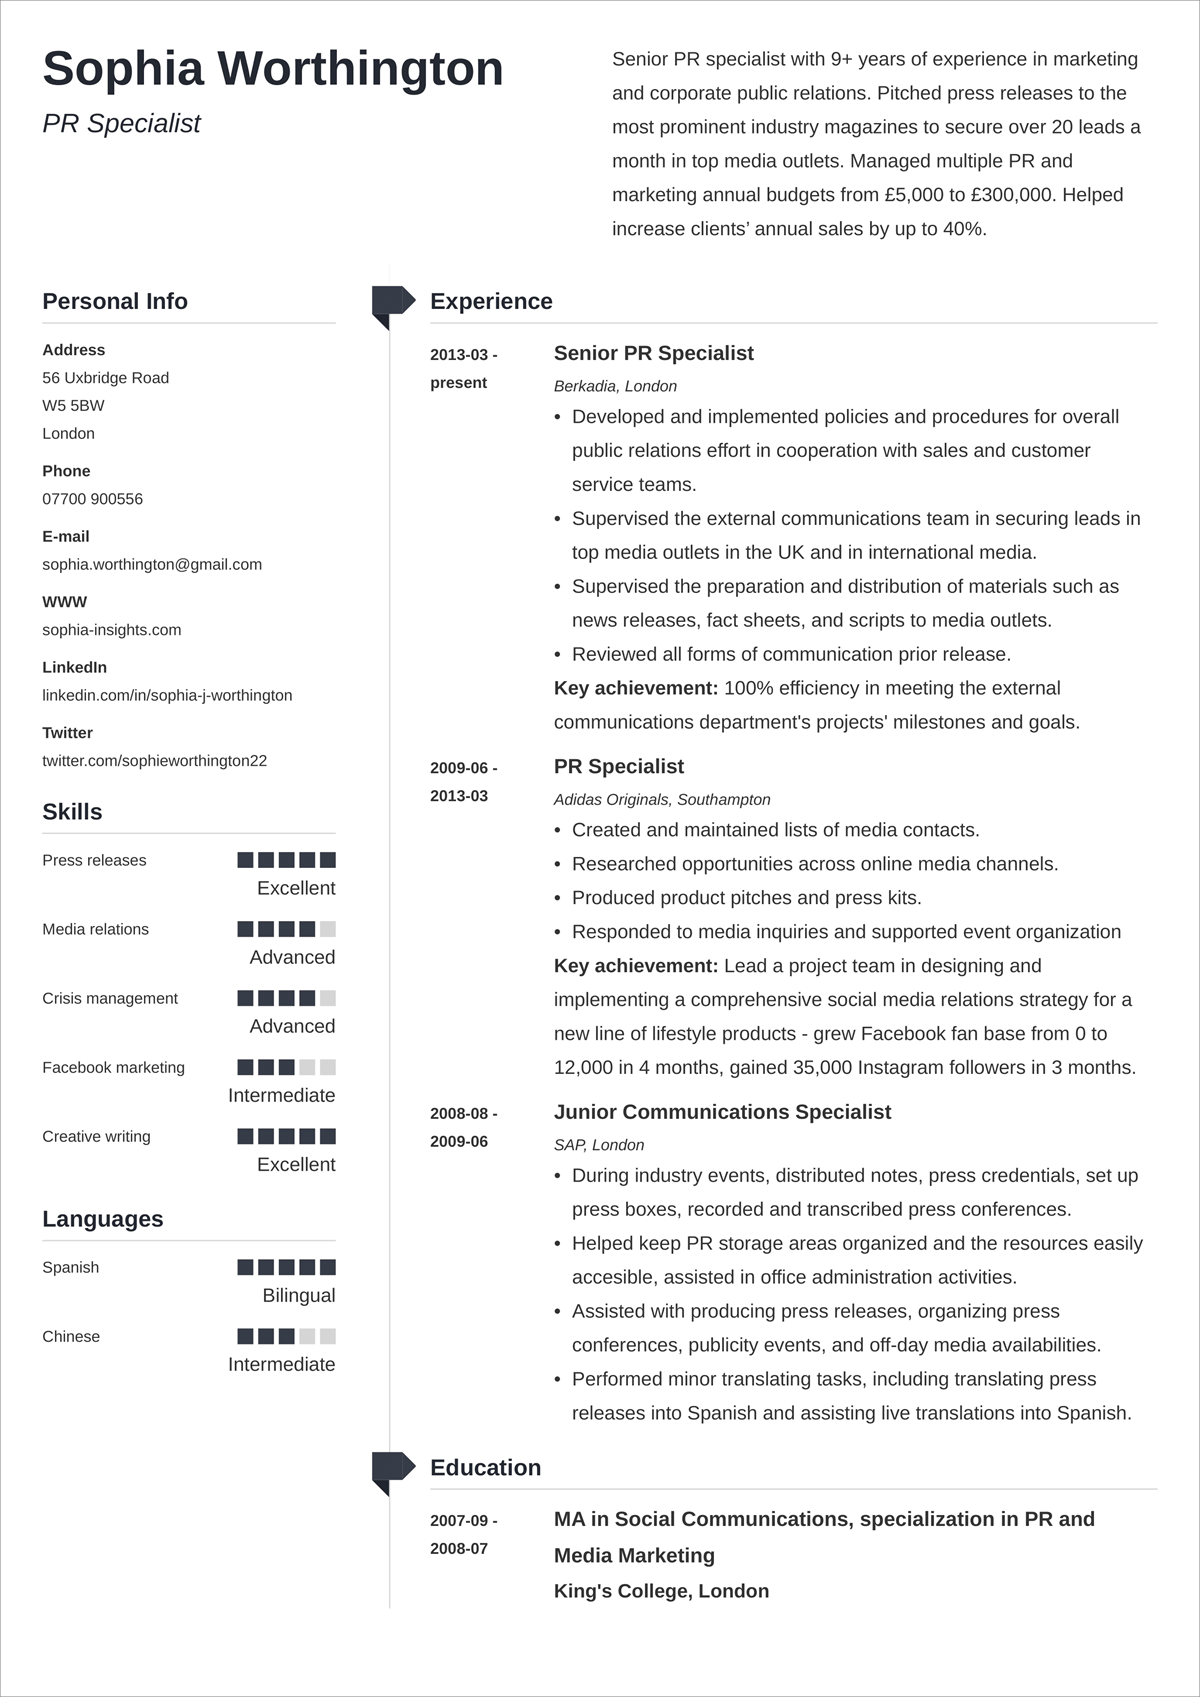 18+ Simple & Basic CV Templates with Easy to Use Layout